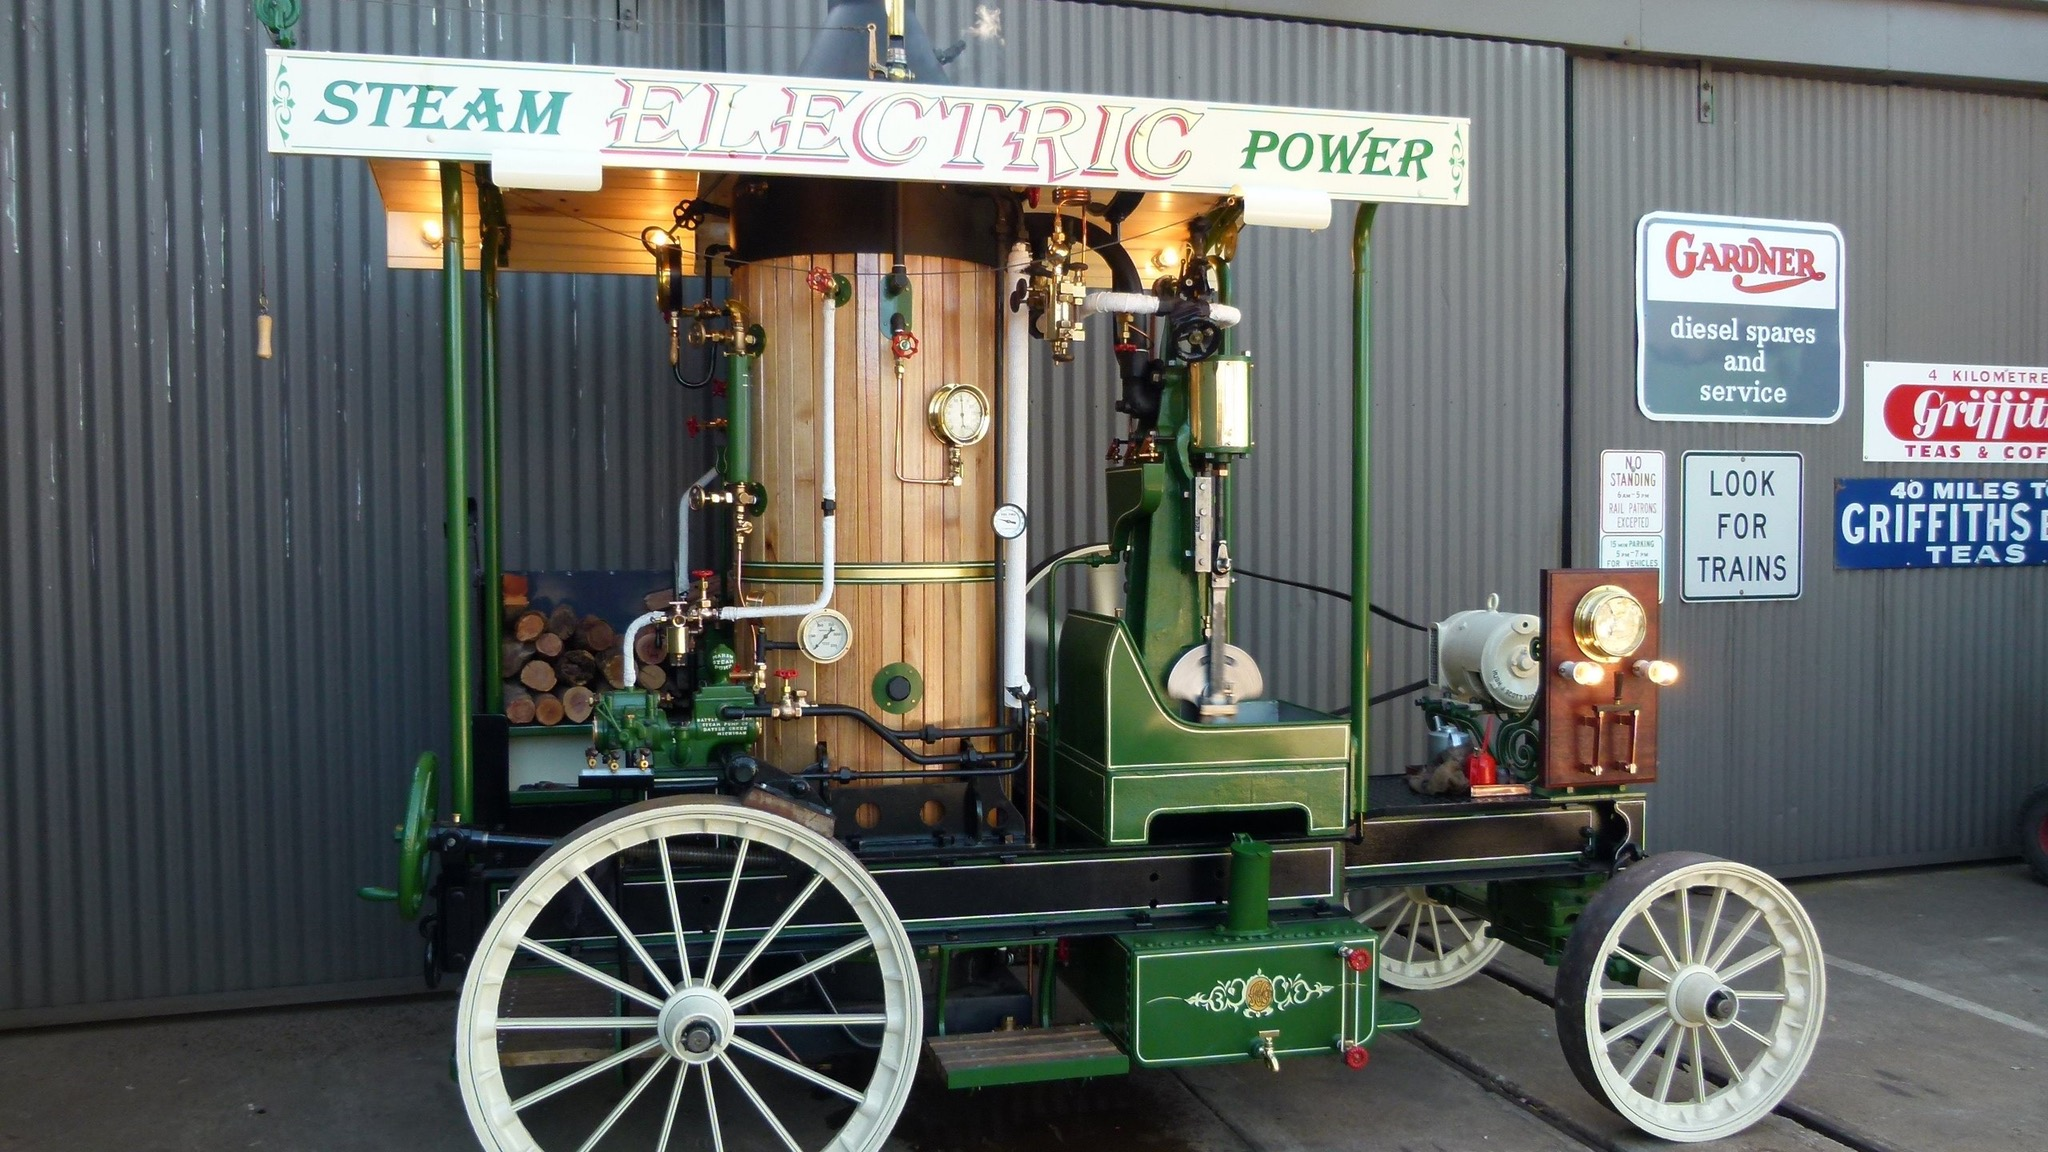 American Carousel Steam Engine generating electricity